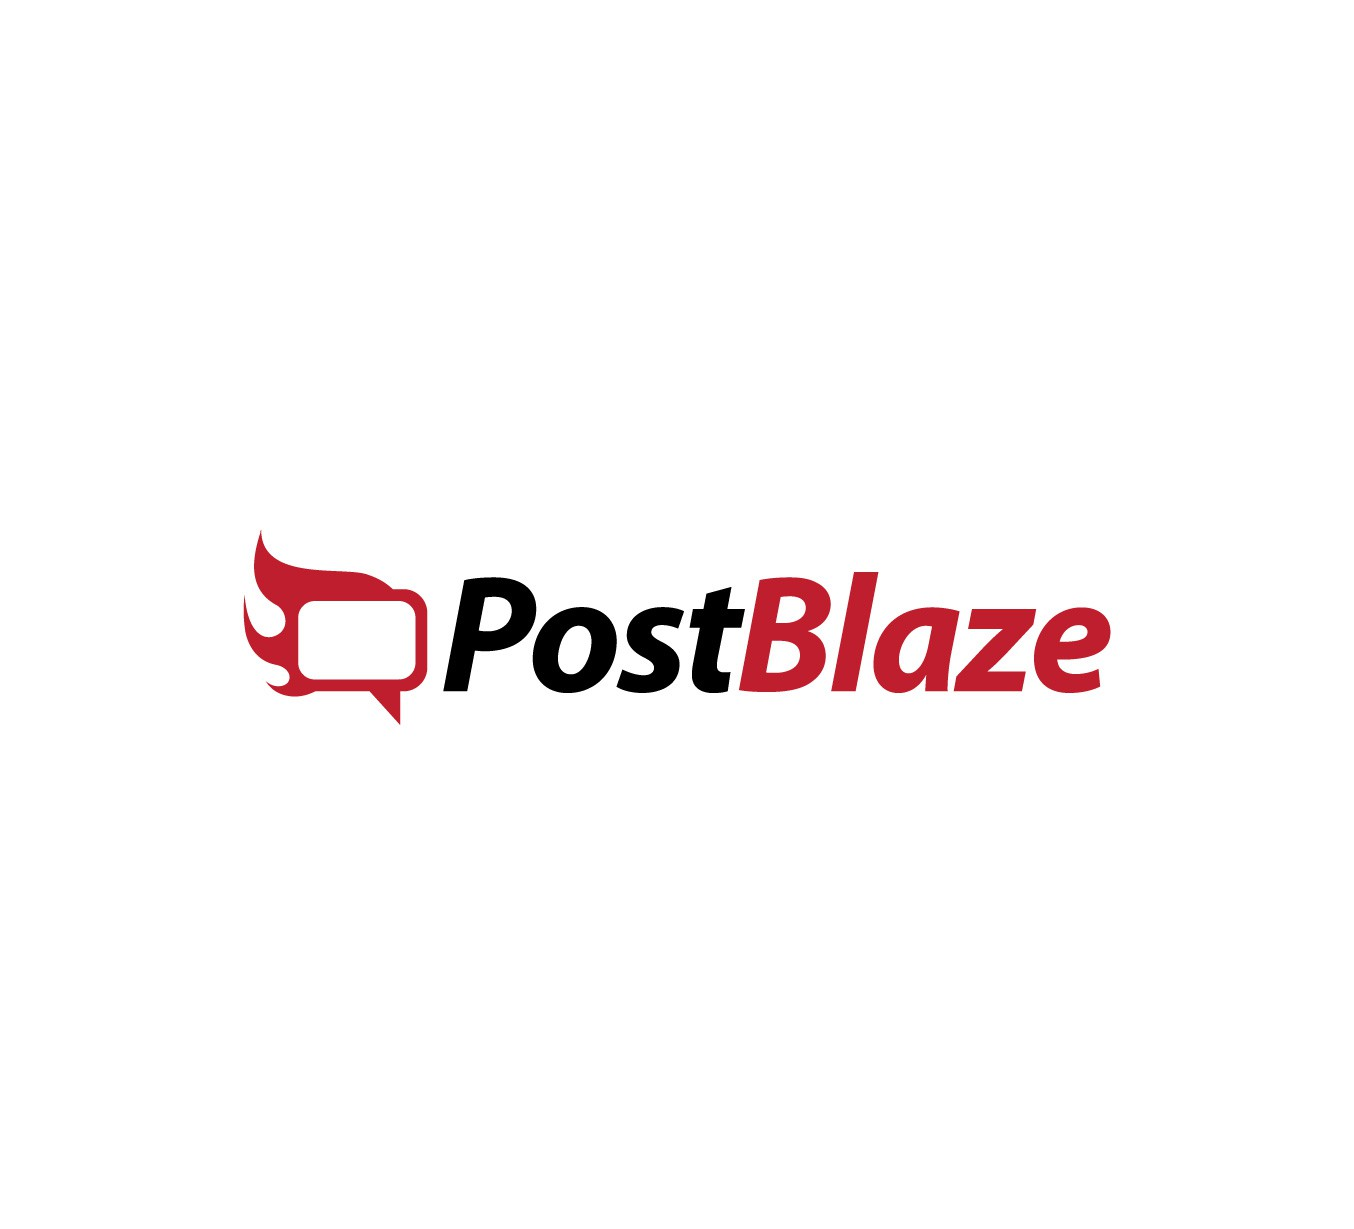 New logo wanted for PostBlaze